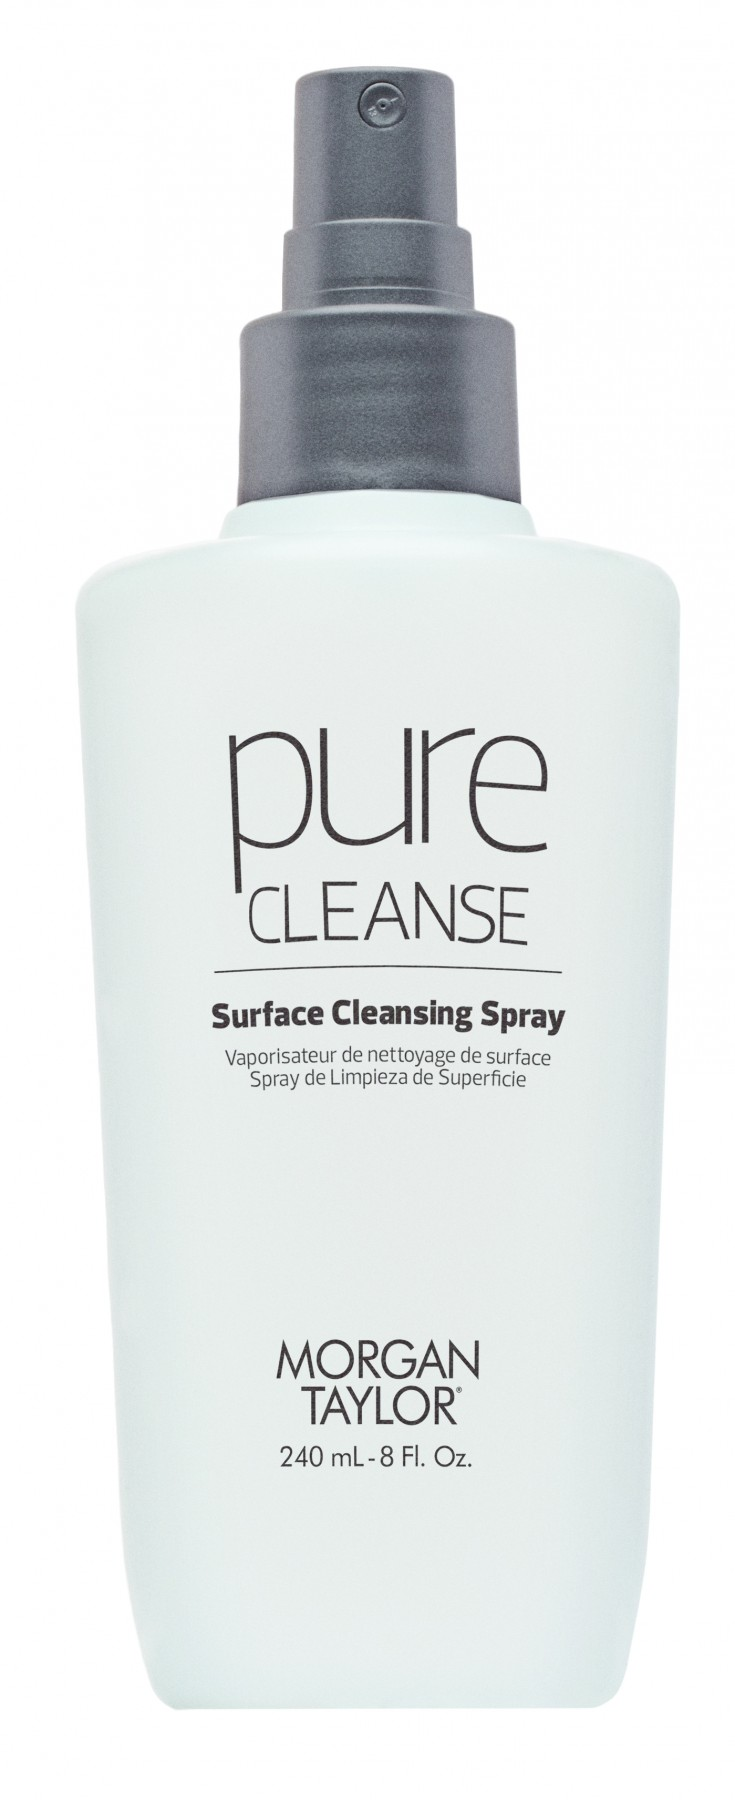 Surface Cleansing Spray - Contains ISP Alcohol - Pure Cleanse 240ml